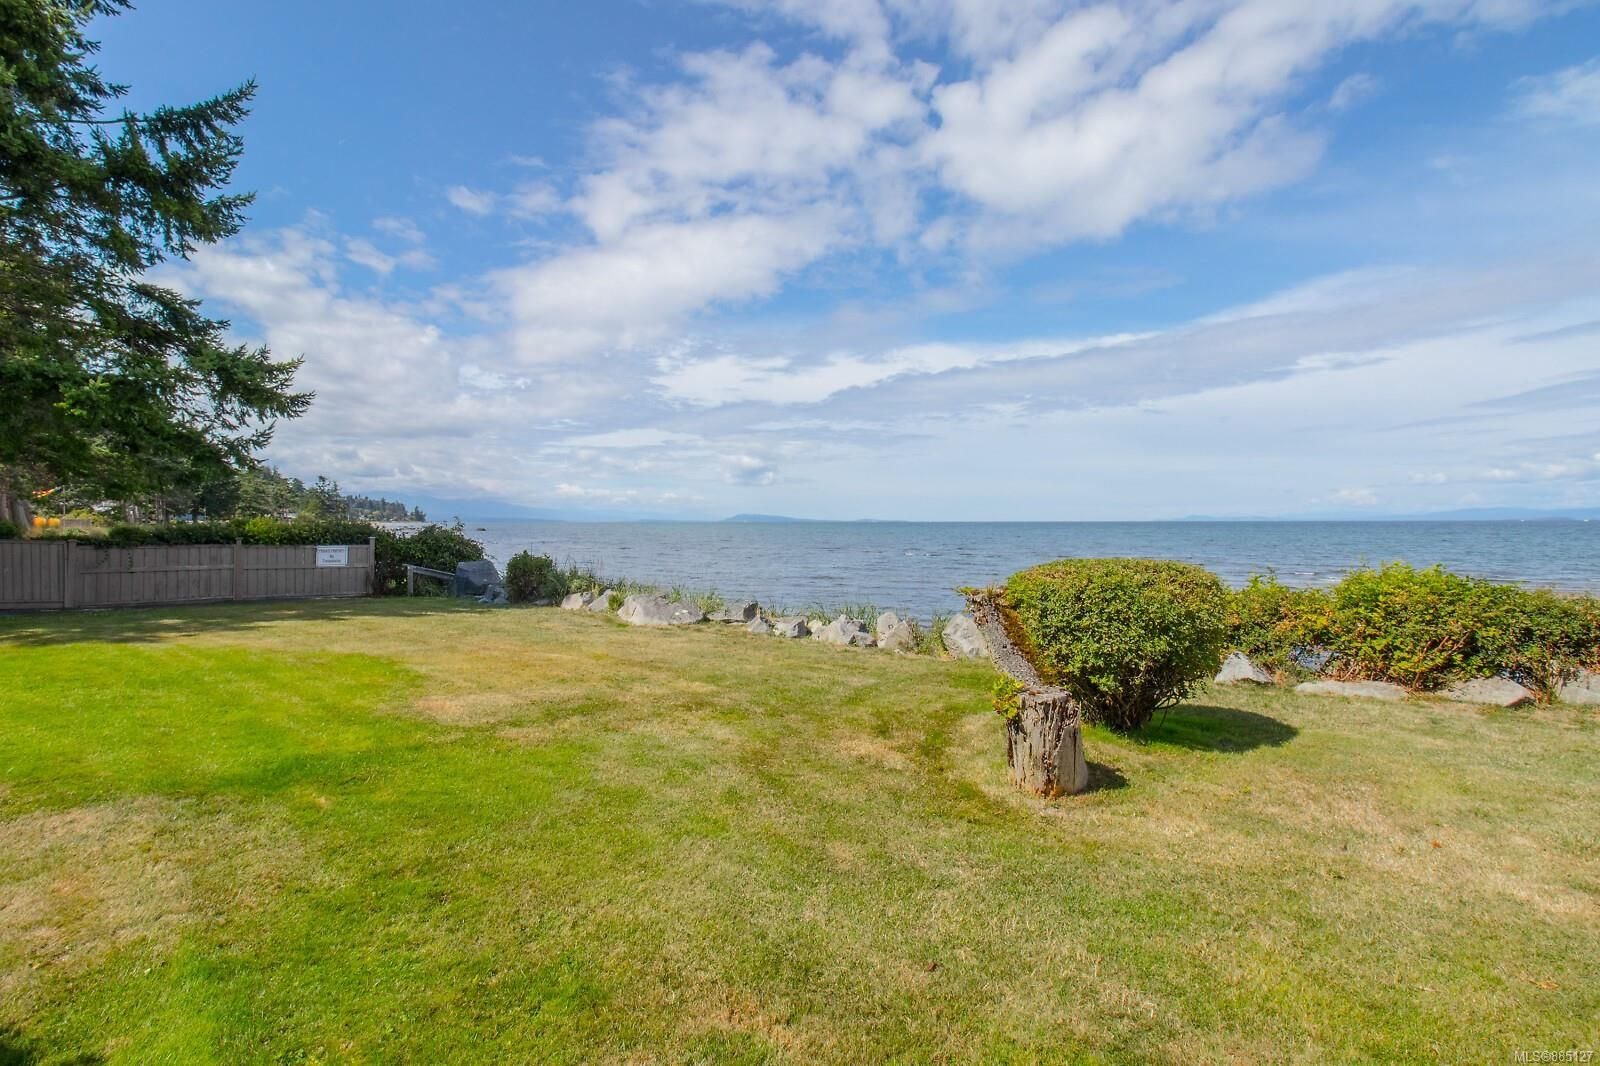 Photo 48: Photos: 26 529 Johnstone Rd in : PQ French Creek Row/Townhouse for sale (Parksville/Qualicum)  : MLS®# 885127